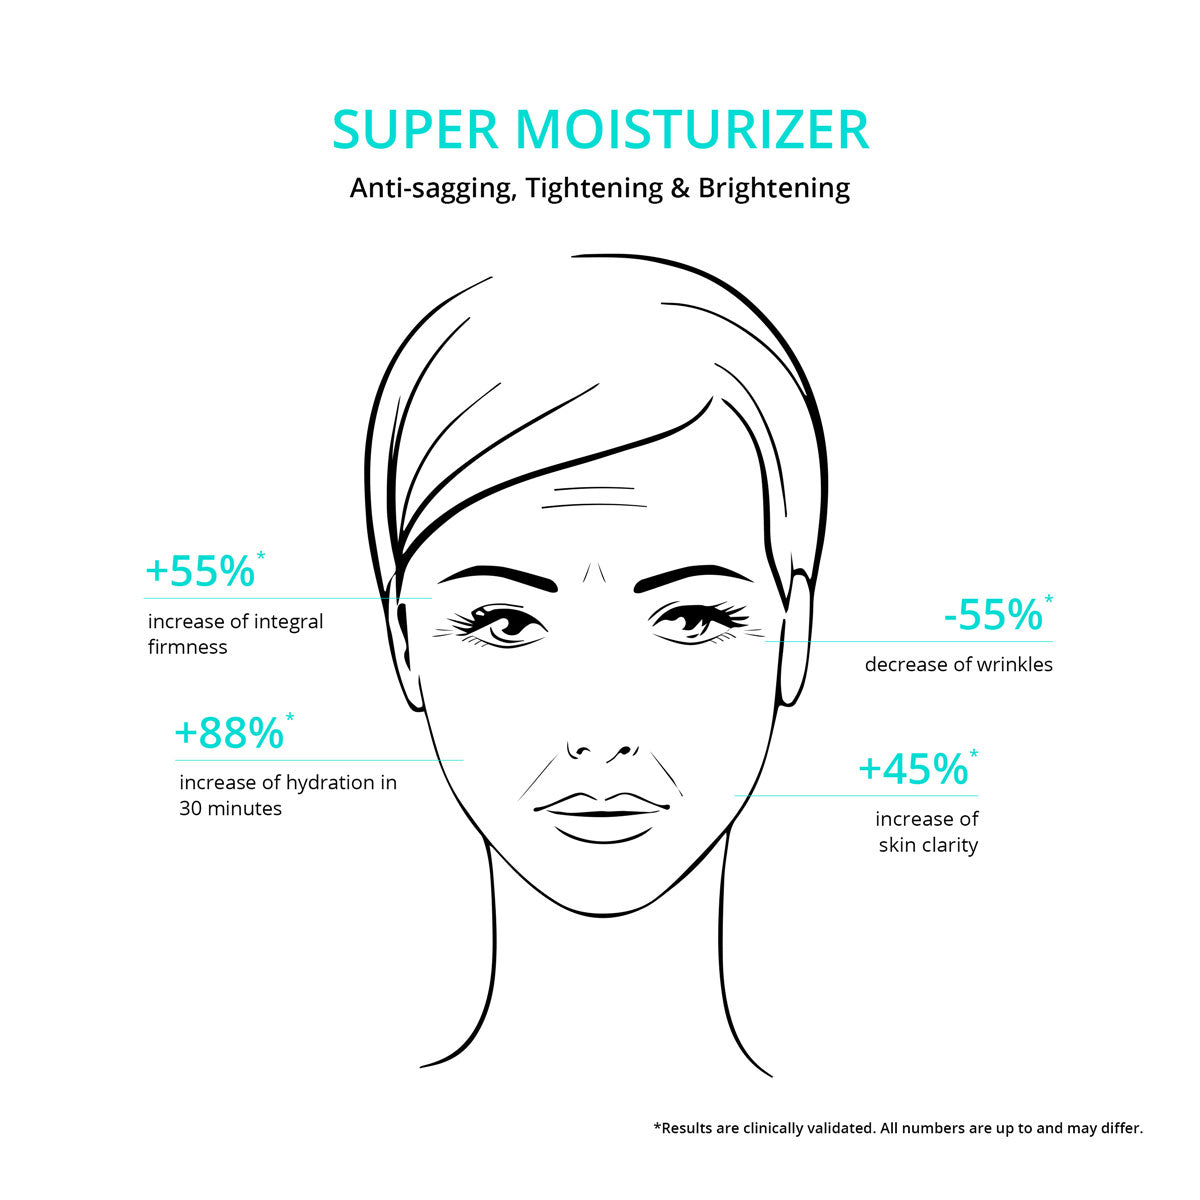 Super Moisturizer - Ultra Hydration & Rejuvenation Facial Moisturizer